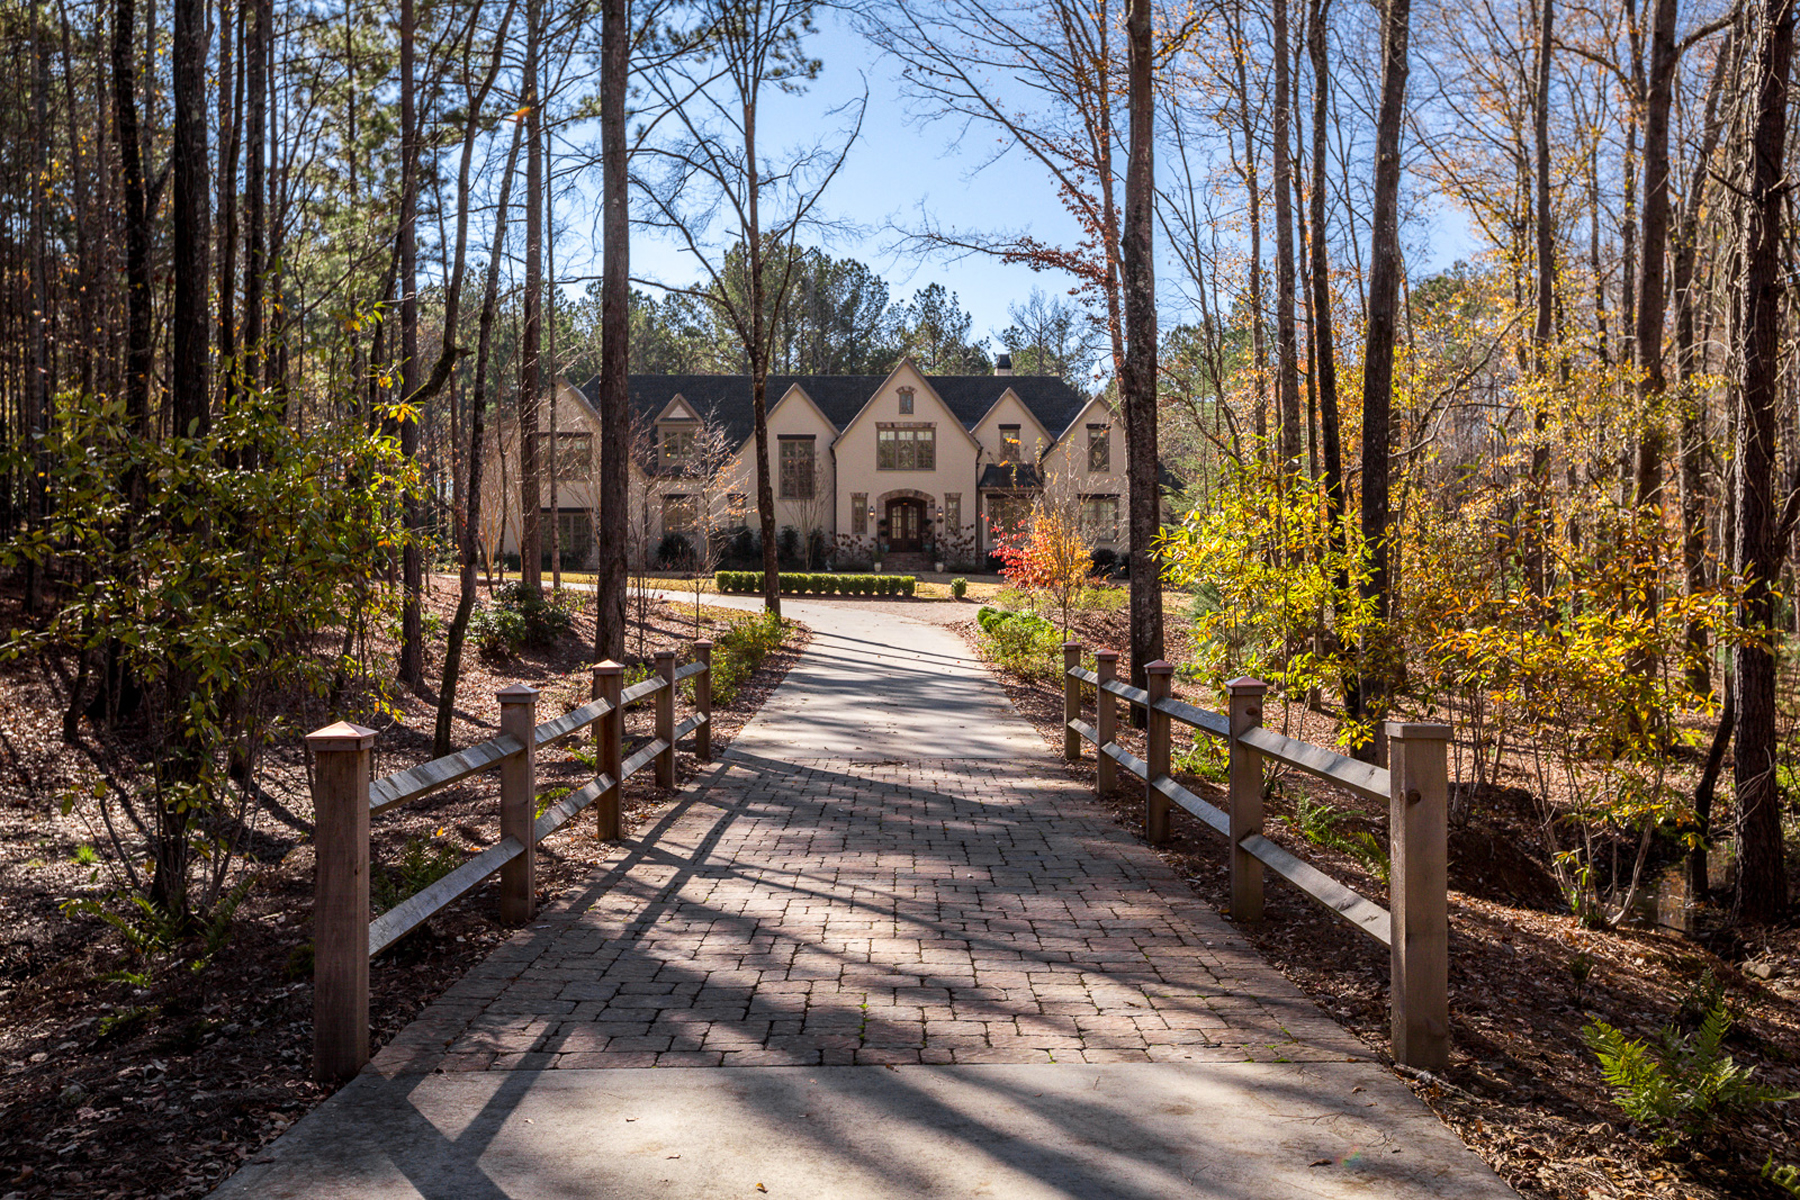 Single Family Home for Sale at Stunning Six Acre Estate - Peachtree City Schools 225 Diamond Point Fayetteville, Georgia 30215 United States